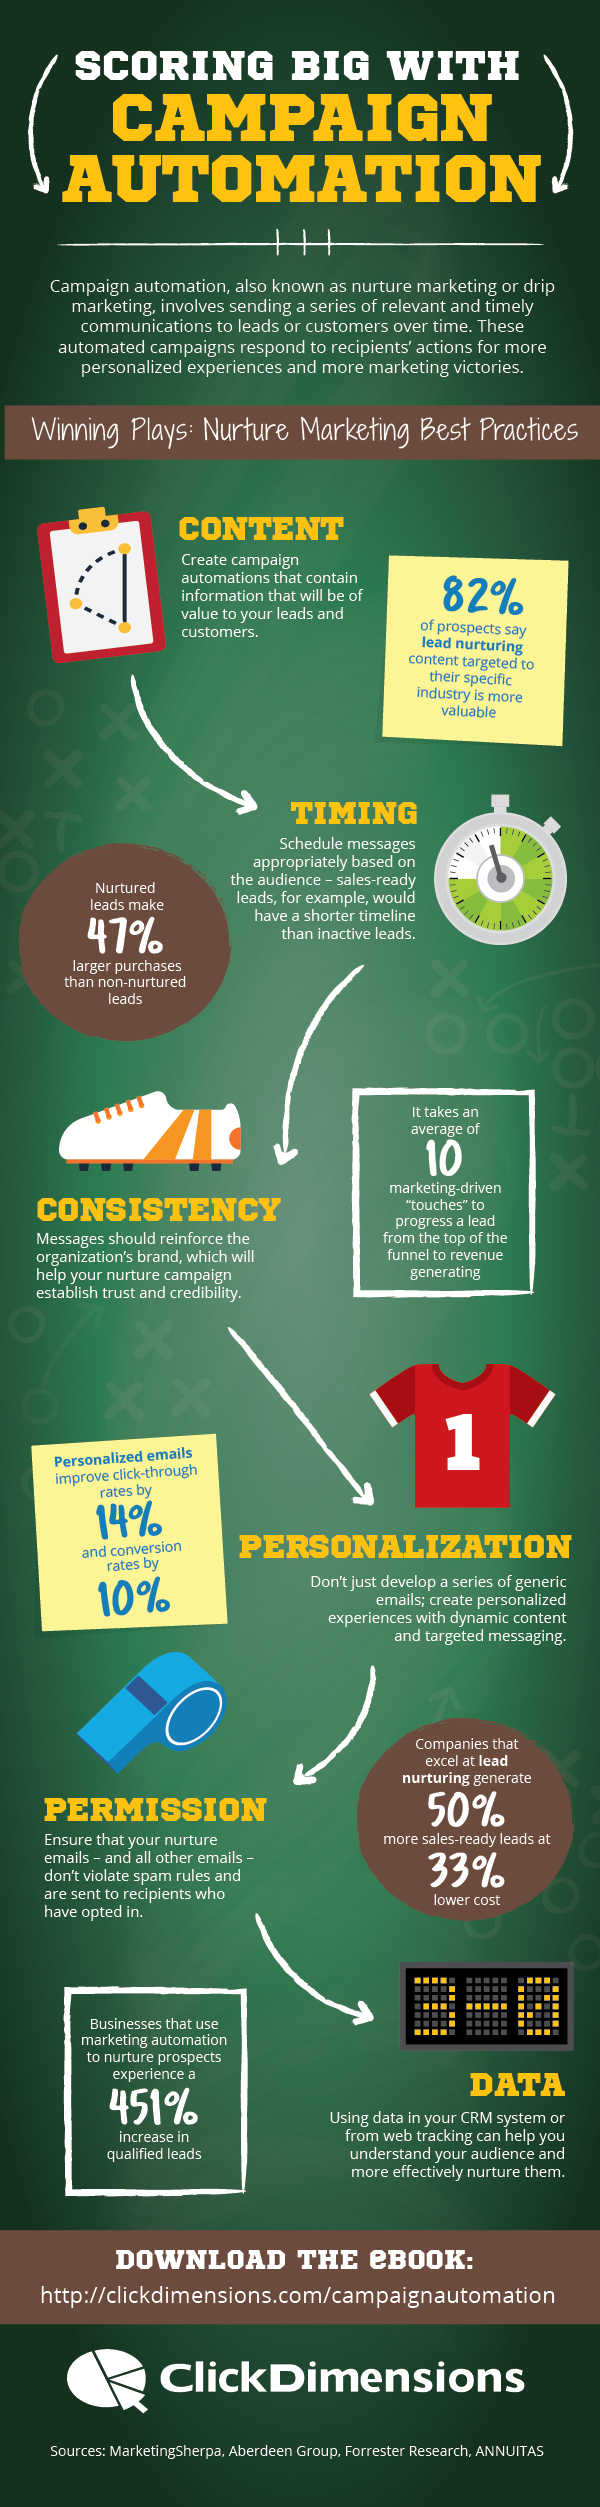 Campaign Automation Infographic